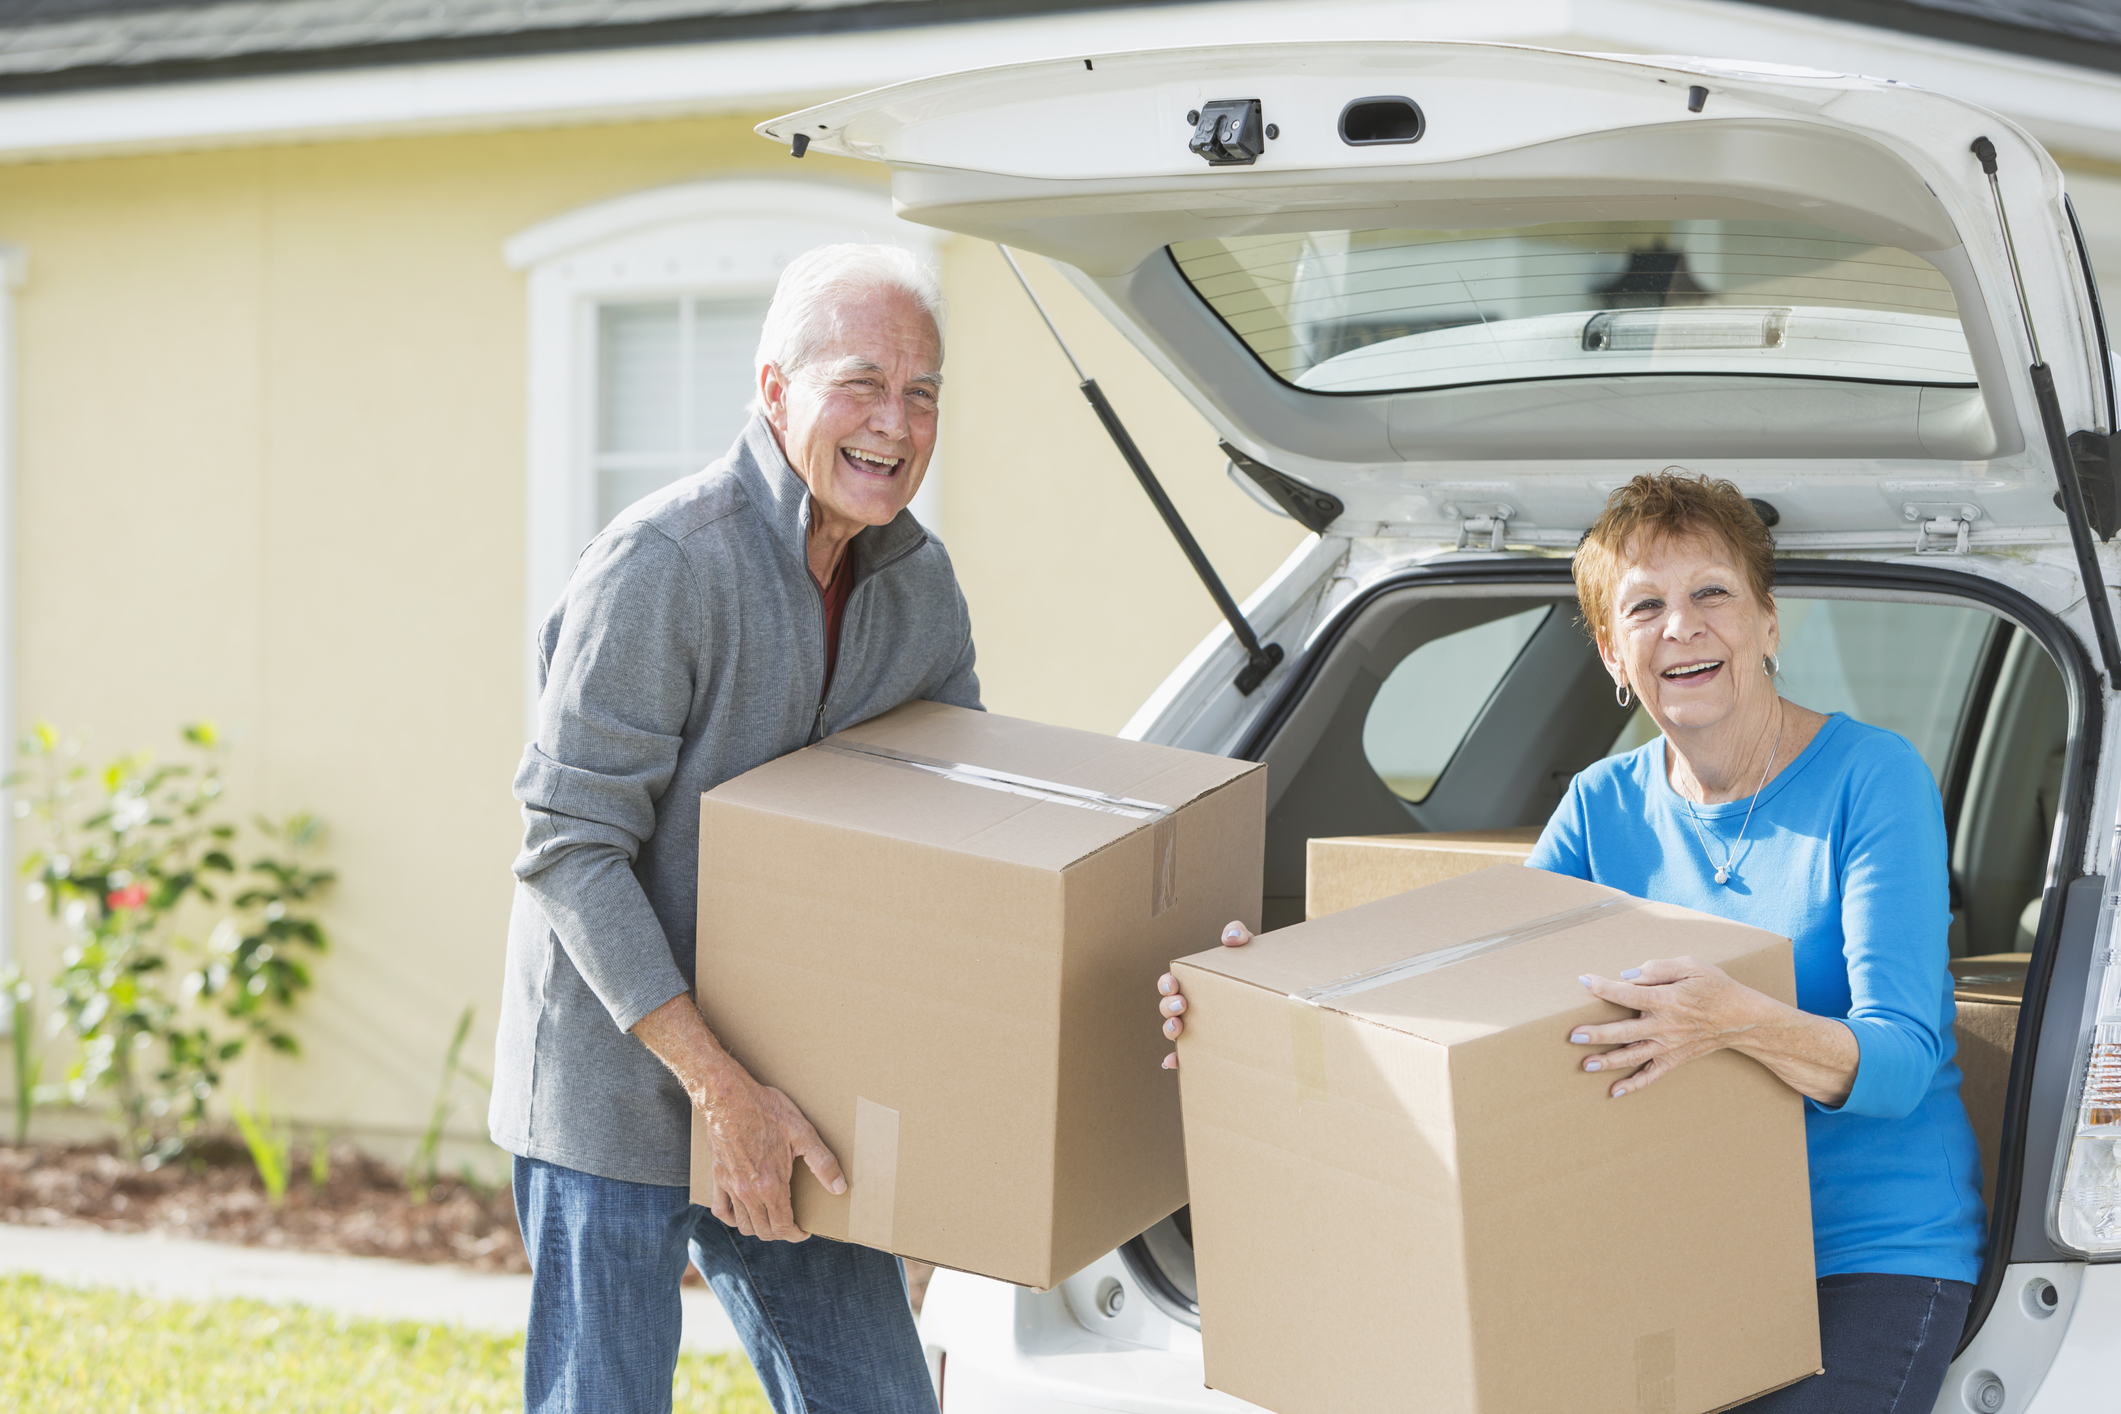 downsizing - Working with families and seniors to downsize to a smaller home, apartment or assisted living facility.Downsizing possessionsSpace allocation for use of current furniture in new locationPacking, unpacking and organizing